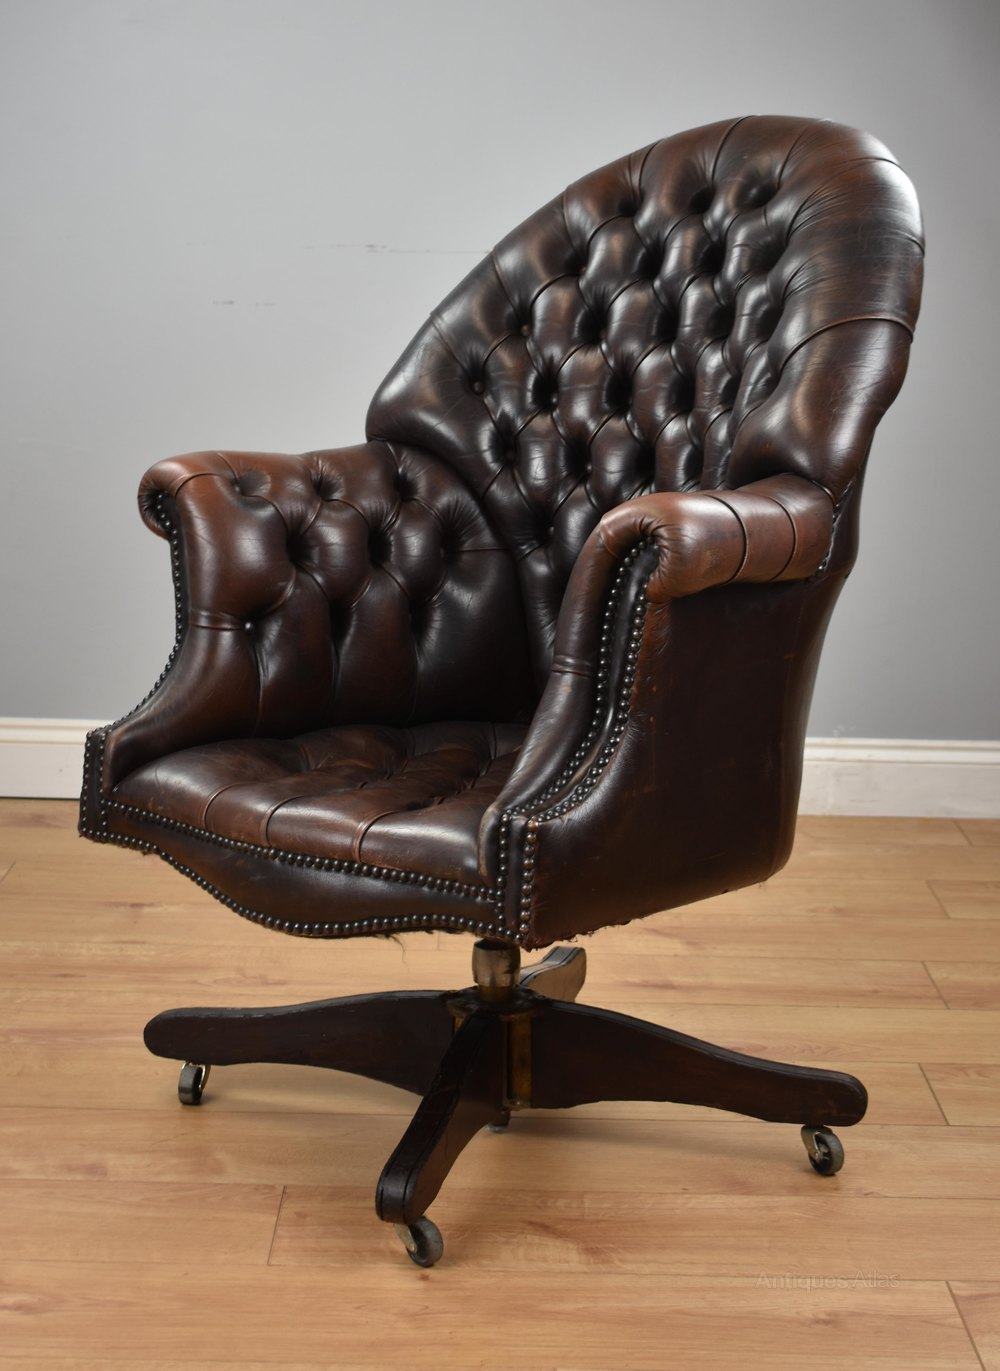 Fabulous Brown Leather Swivel Office Desk Chair Interior Design Ideas Inesswwsoteloinfo